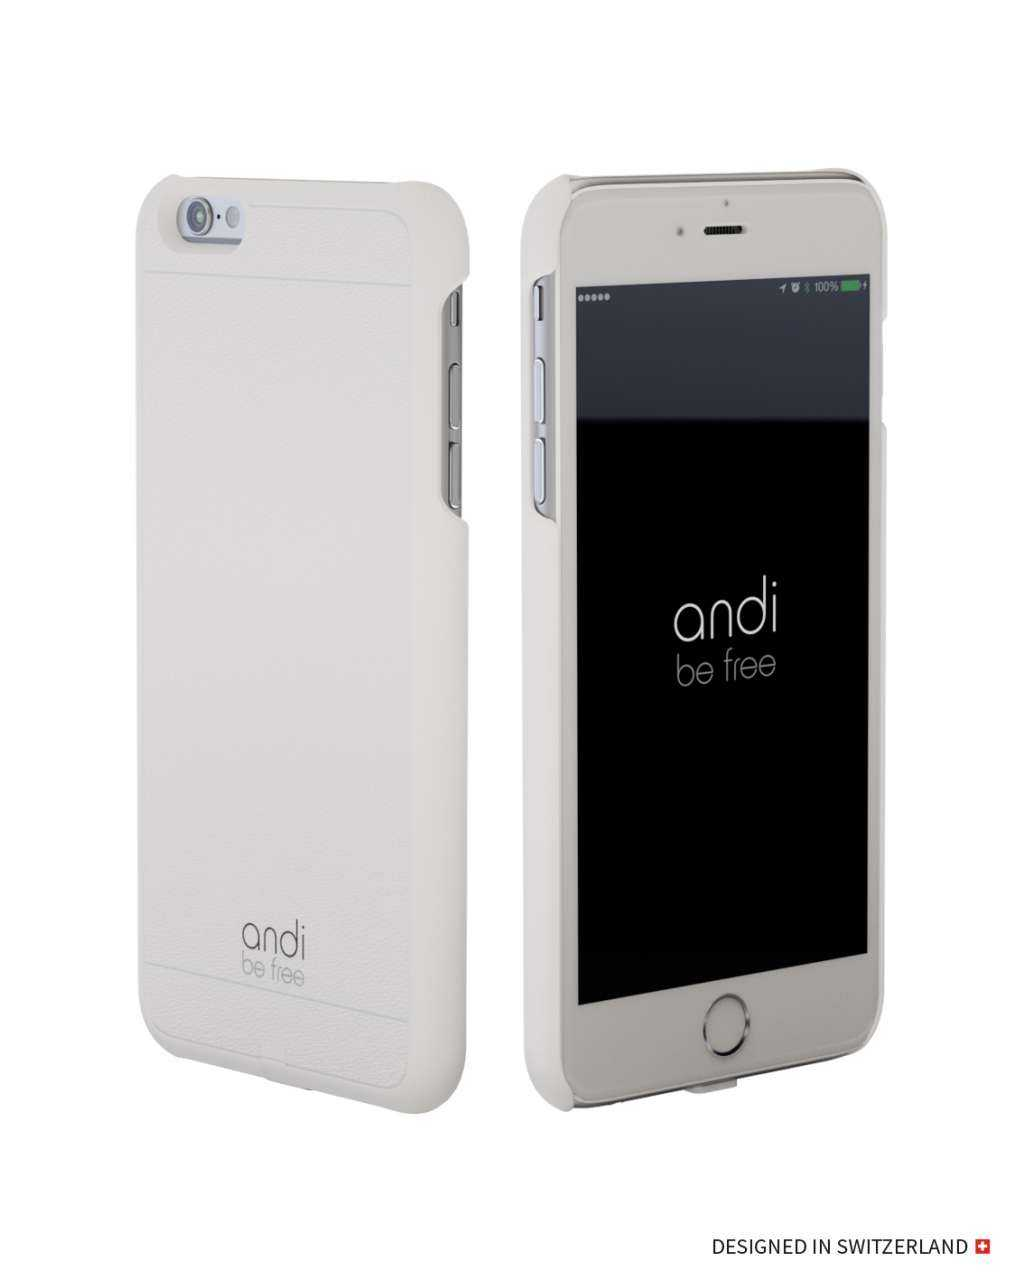 Image of andi be free Apple iPhone 6S Plus / 6 Plus Hülle - Wireless Charging Case - weiss